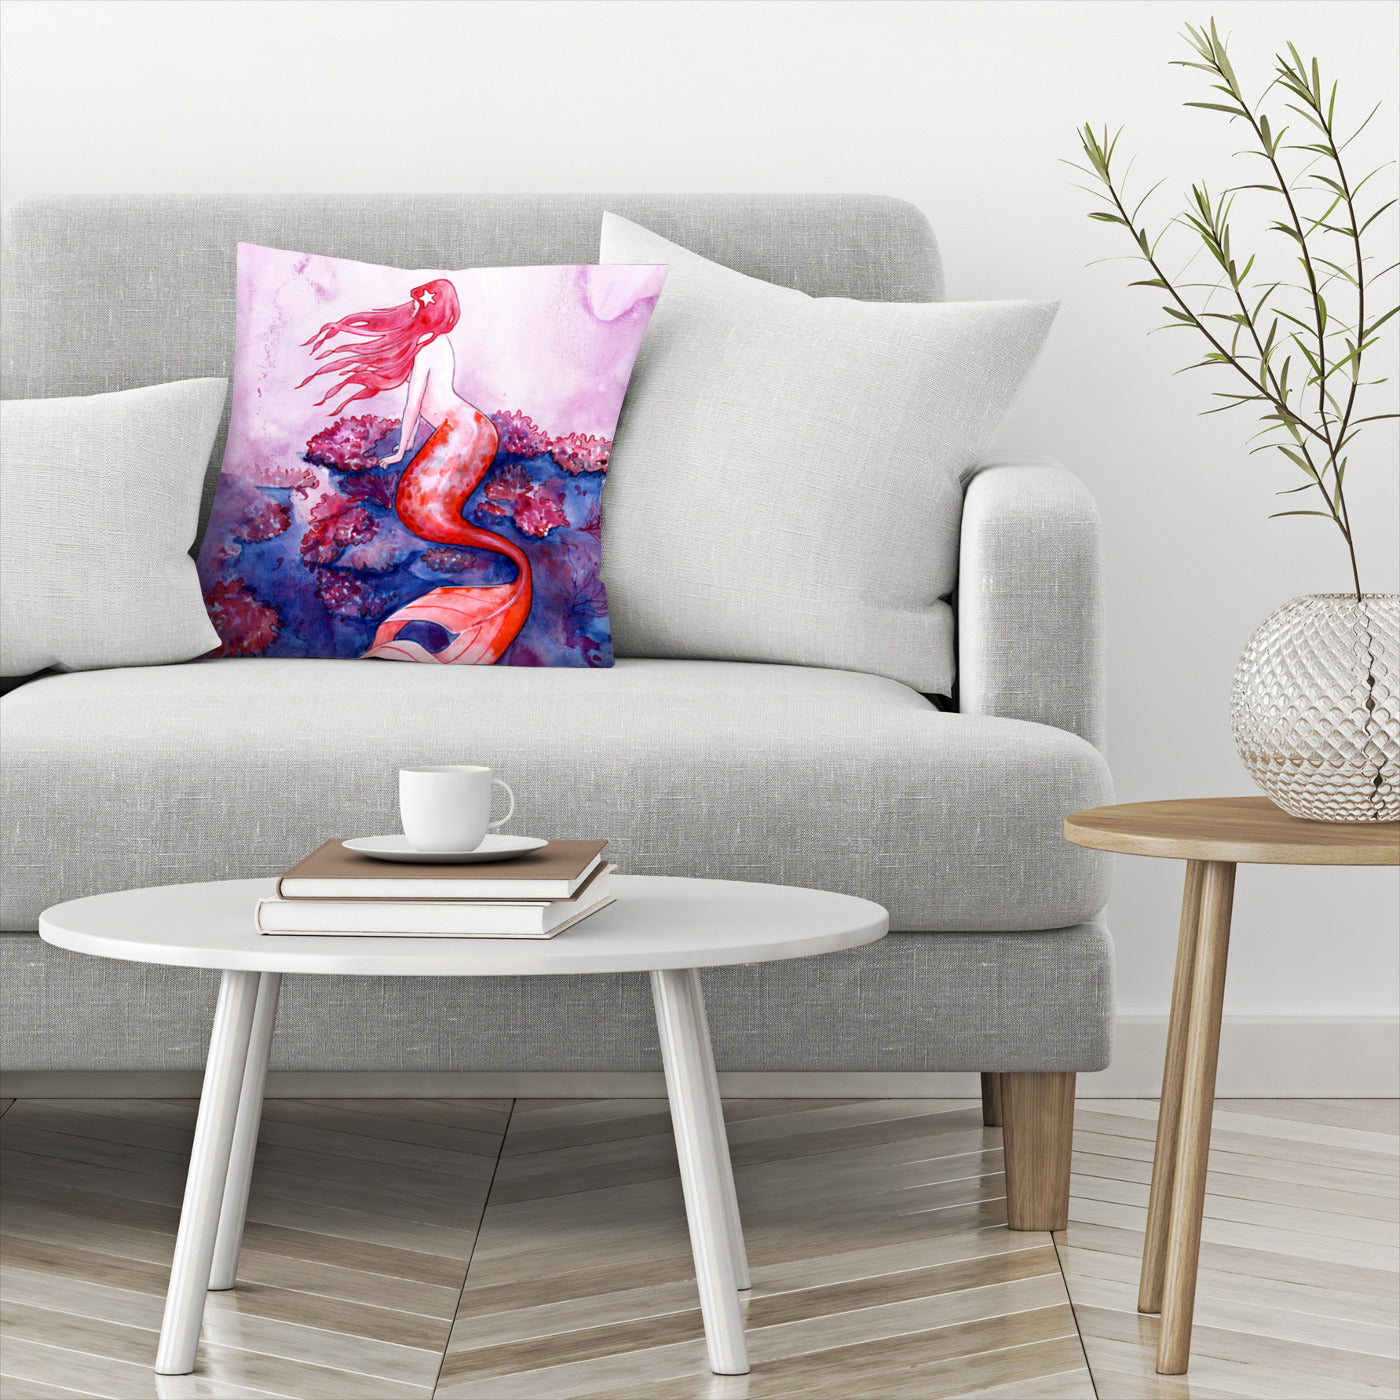 Red Coral Mermaid by Sam Nagel Decorative Pillow - Decorative Pillow - Americanflat